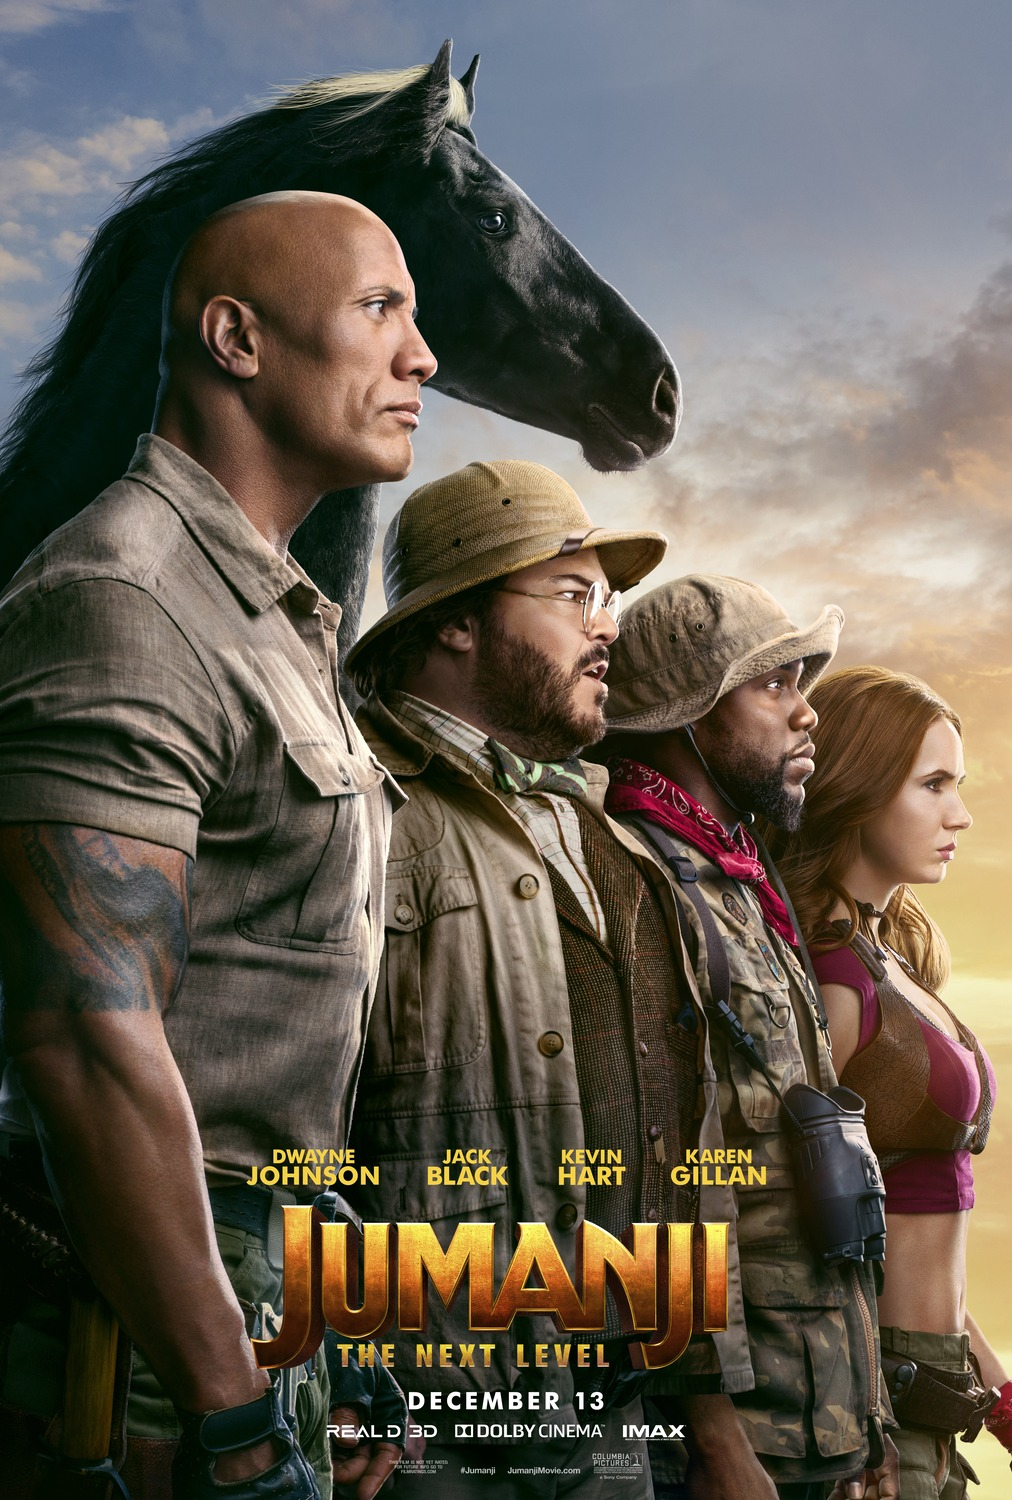 Extra Large Movie Poster Image for Jumanji: The Next Level (#3 of 3)